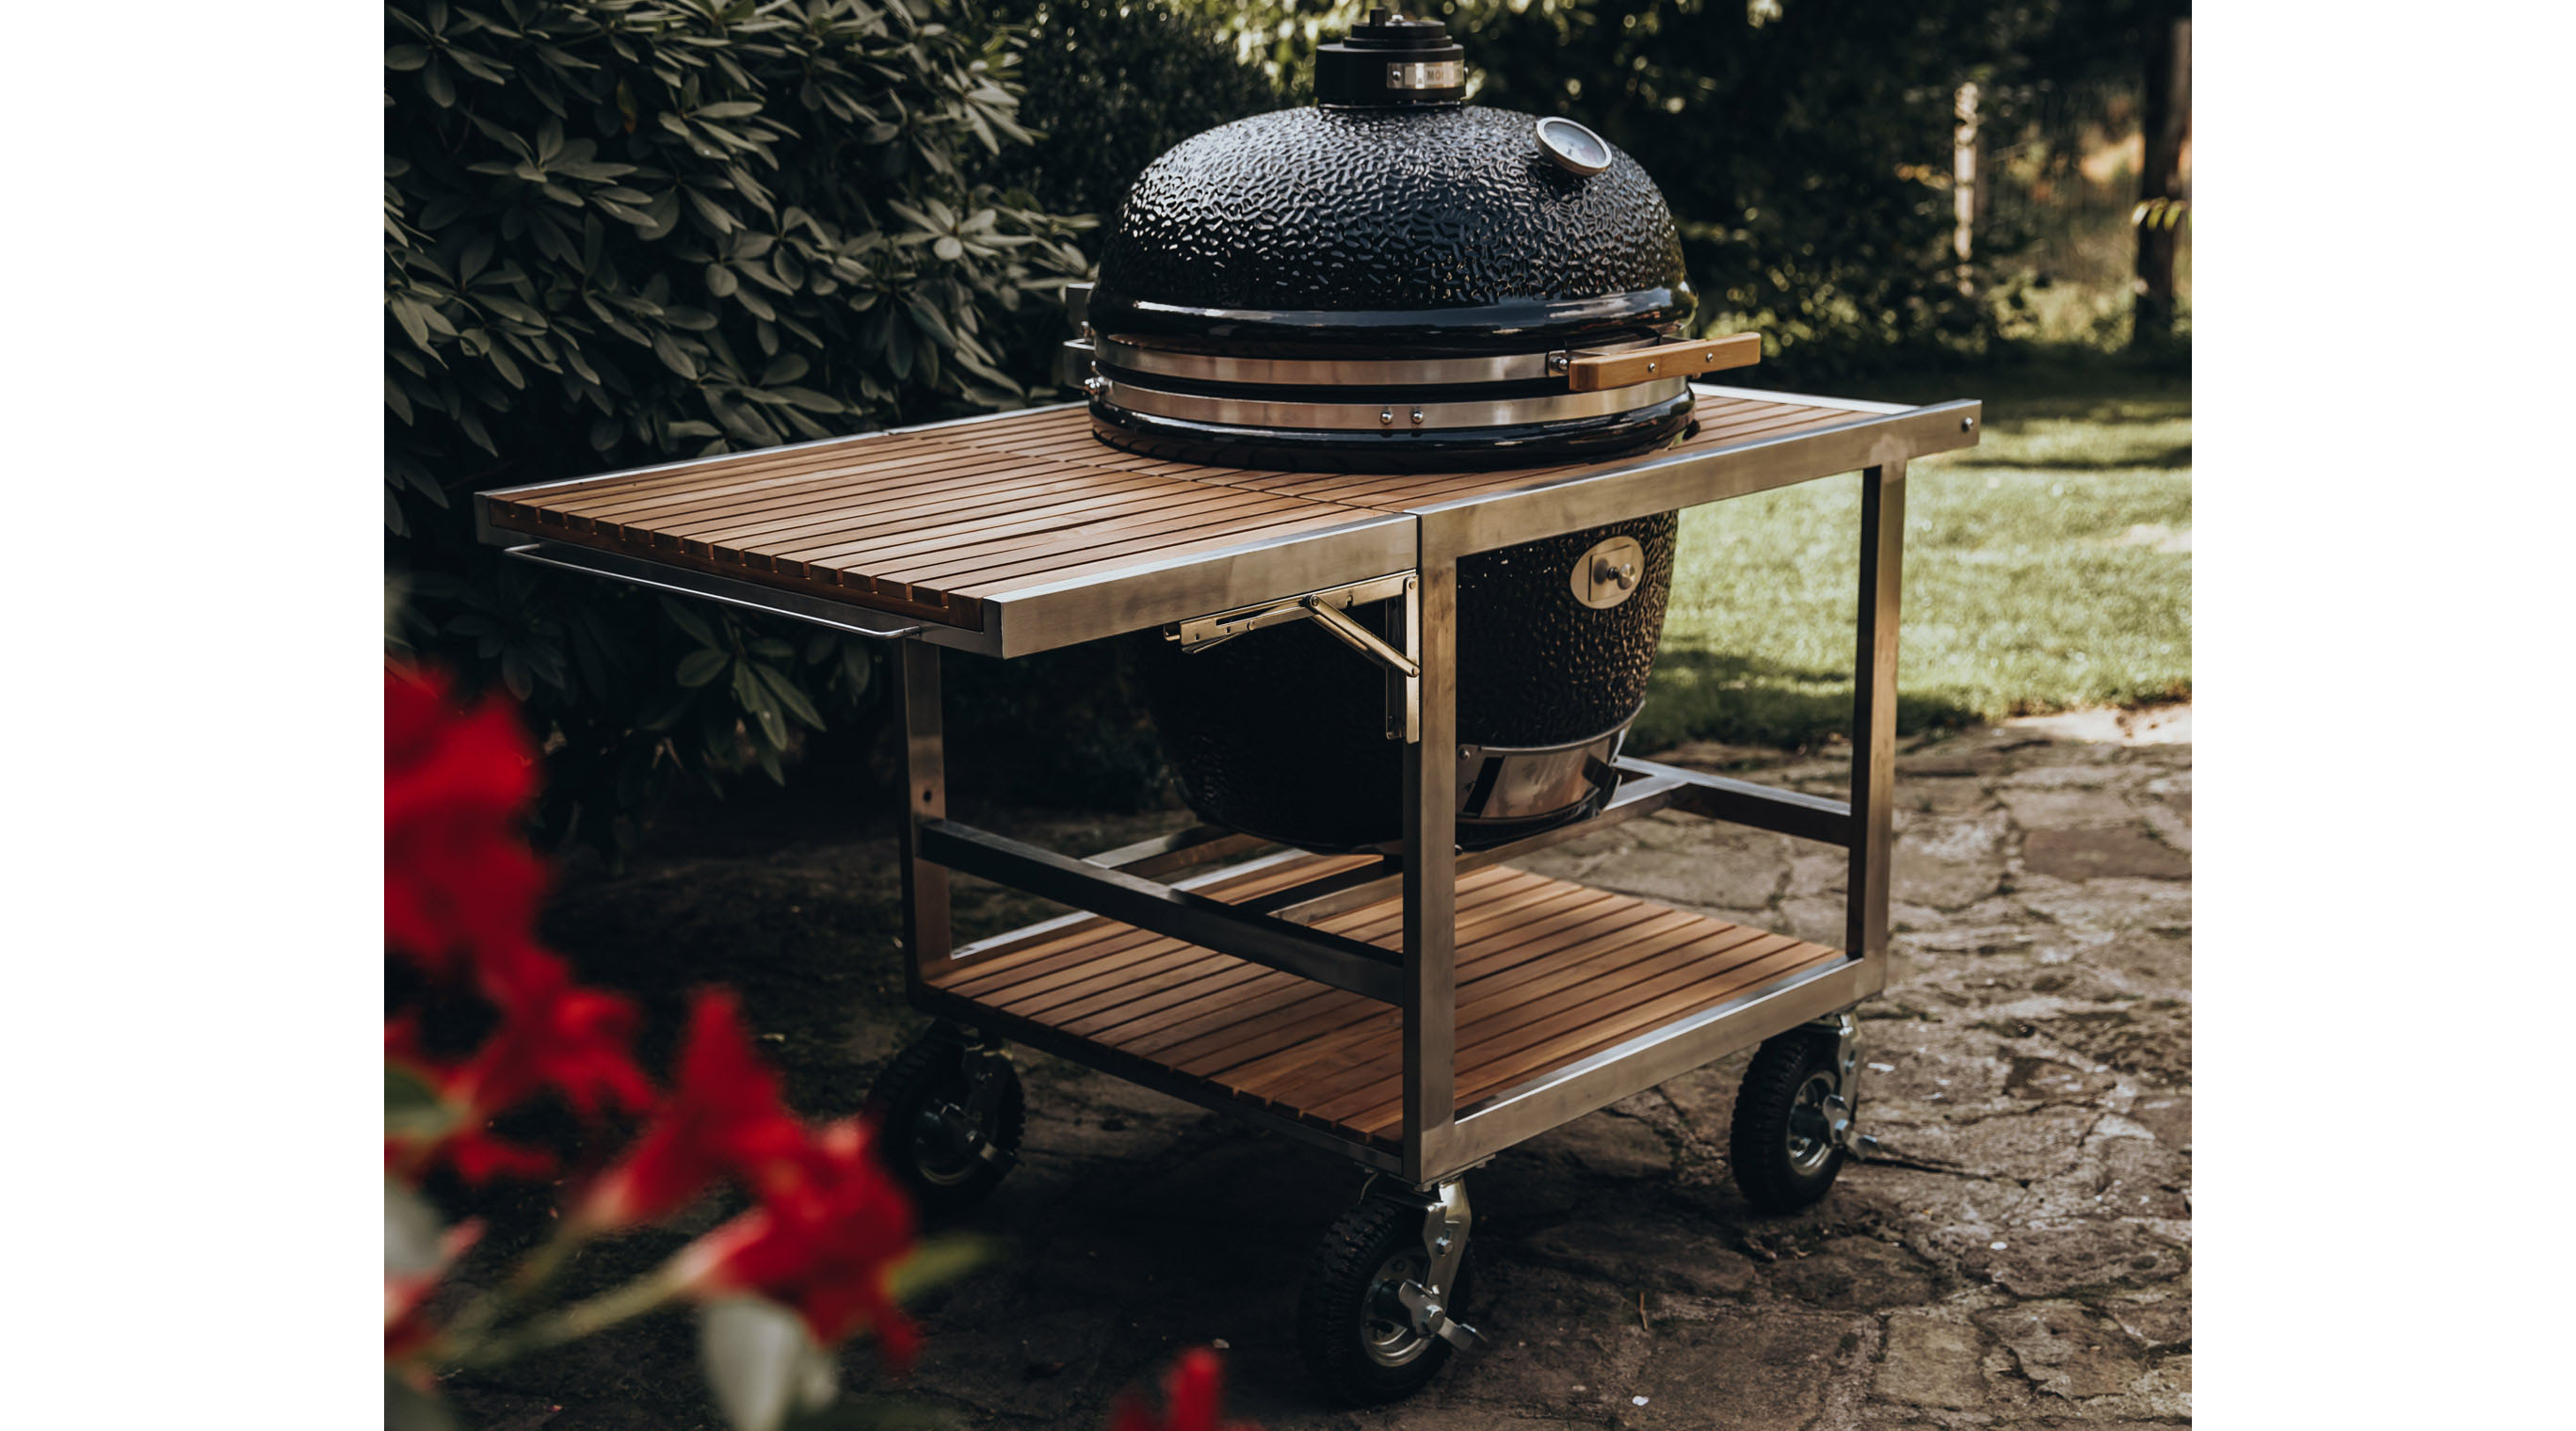 classic buggy by monolith grills the ultimate living company classic buggy by monolith grills